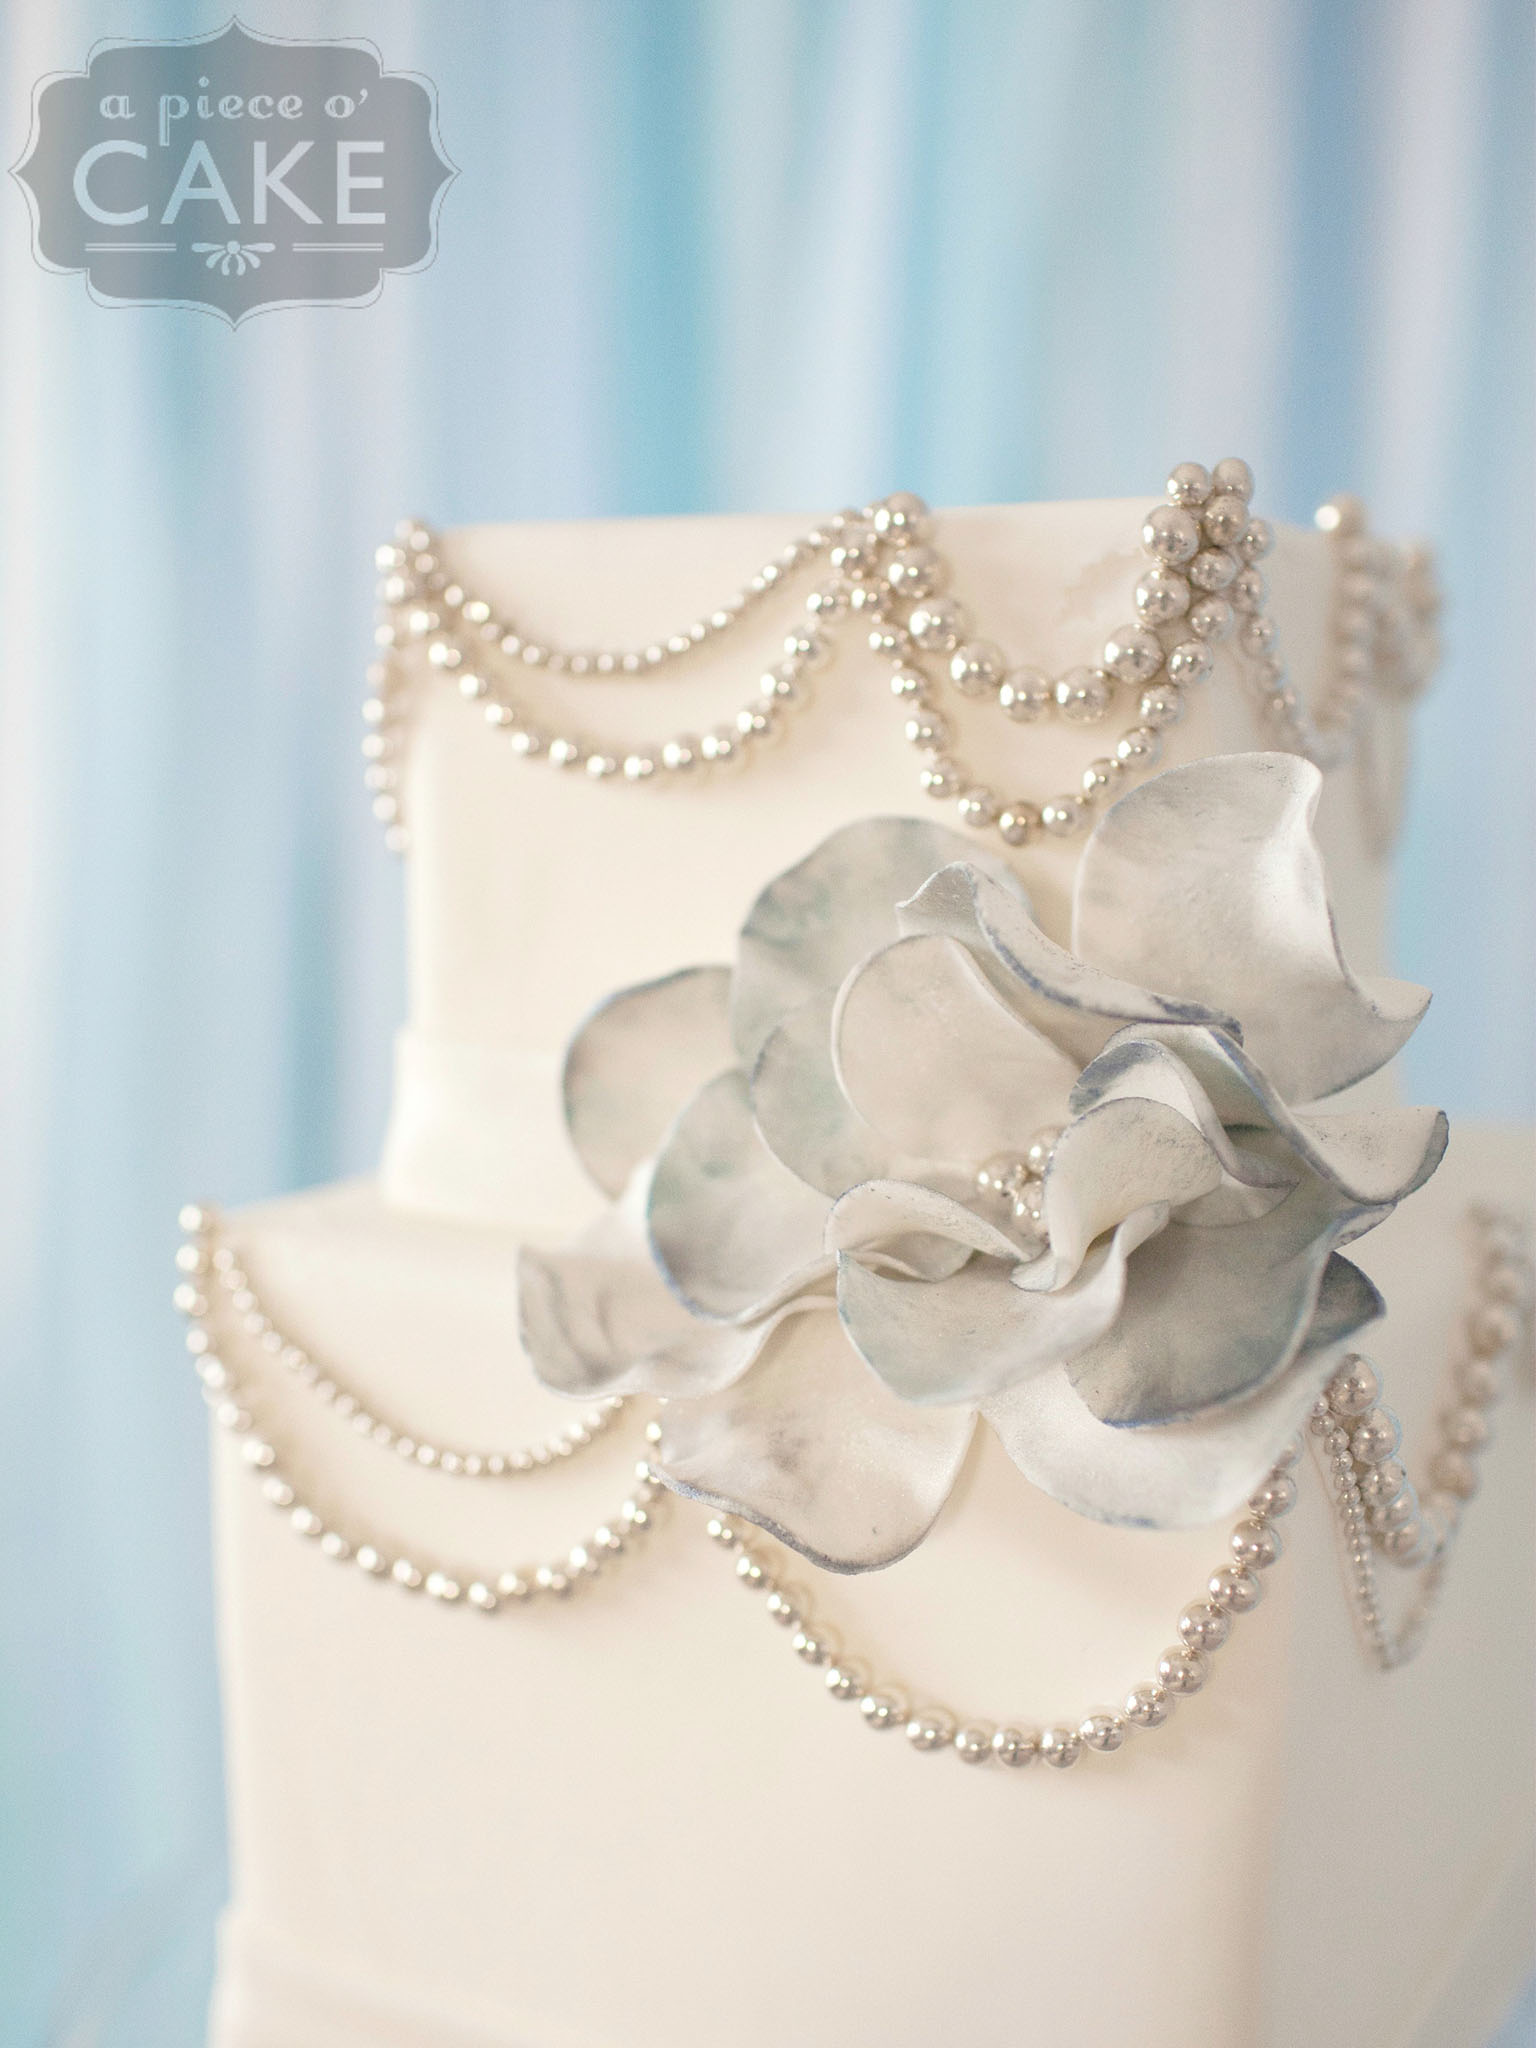 4966 Northwind Drive East Lansing Mi 48823 The Knot Wedding Wire Couples Choice Award Winner 2018 A Piece O Cake All Rights Reserved